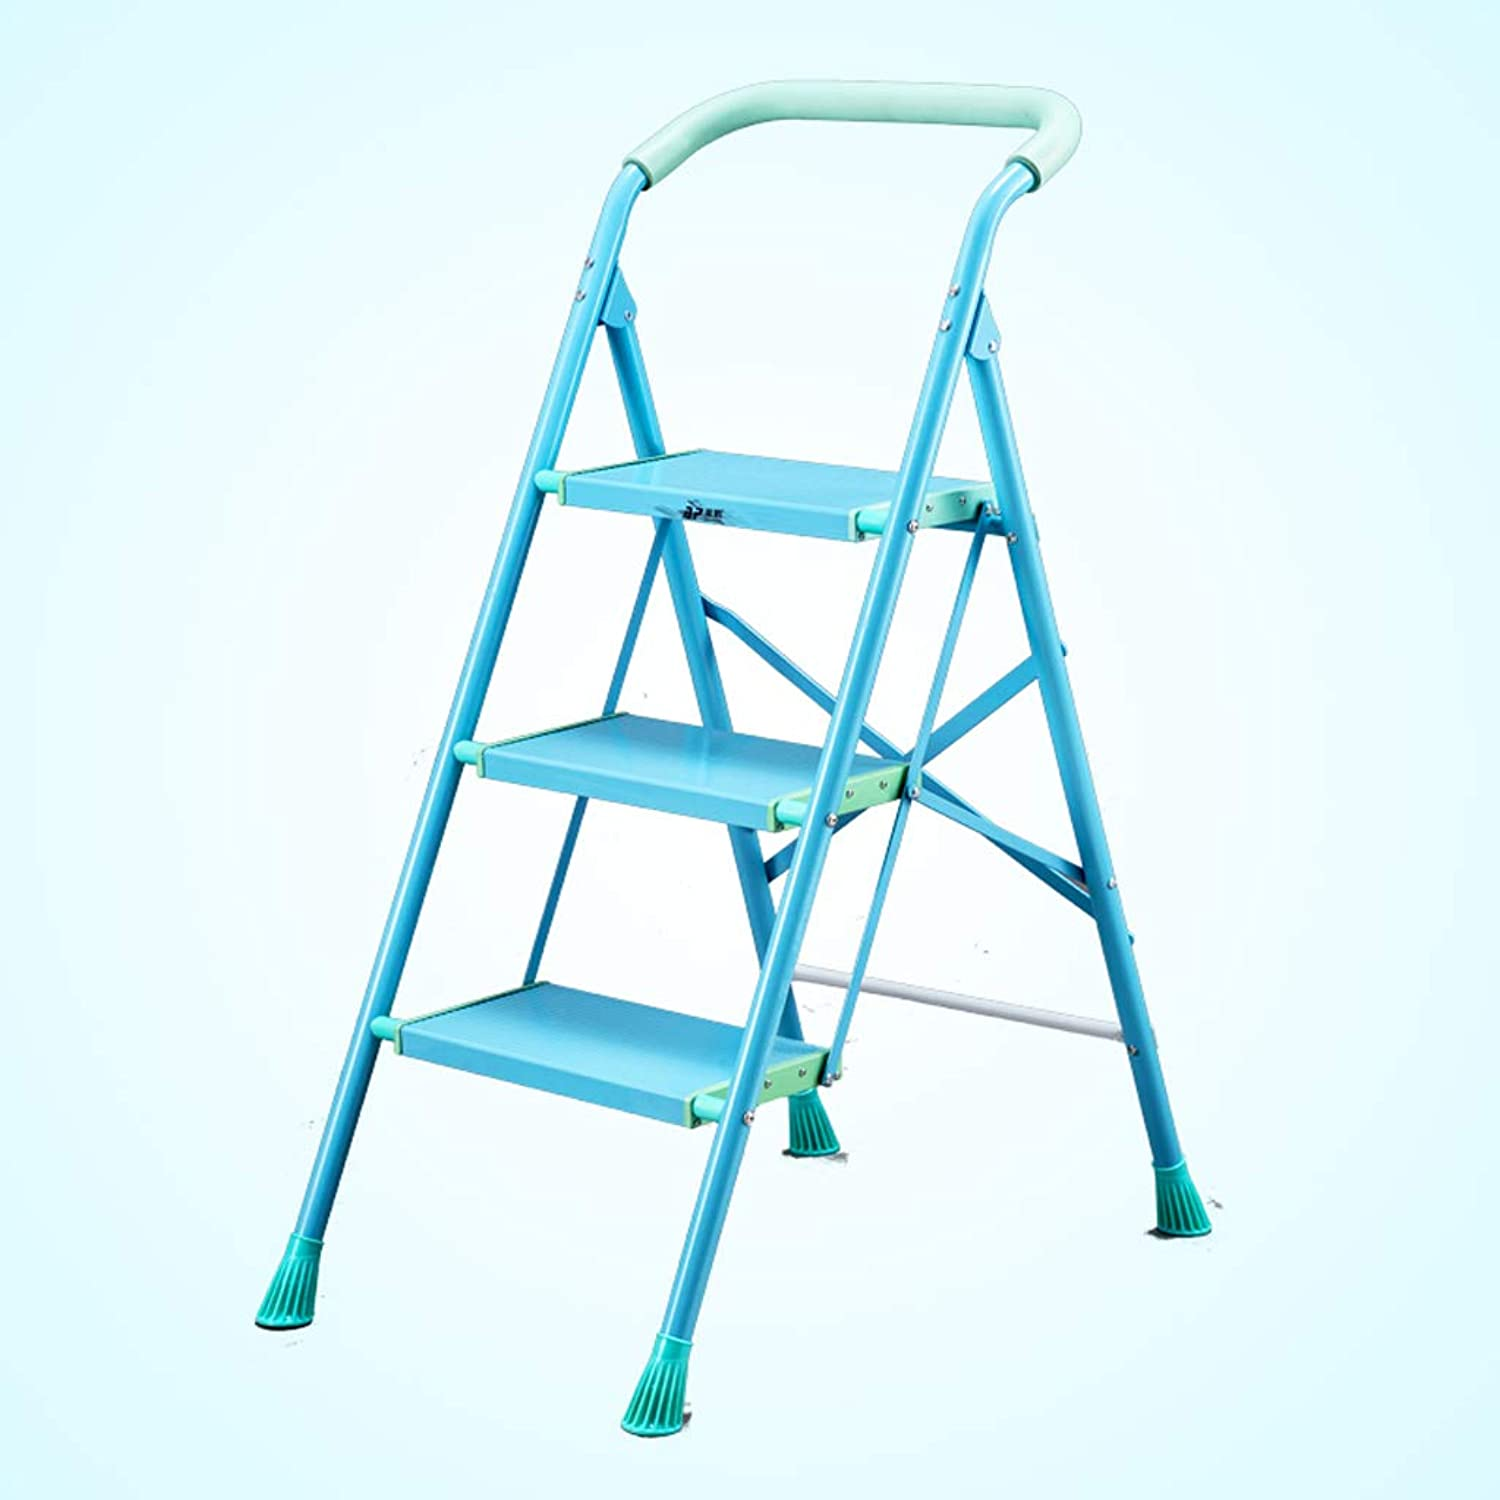 HBJP Ladder Stool Aluminum Ladder Small Household Folding Ladder Ladder Thickening Ladder Three Four Five Step Ladder Bench Indoor Ladder Stairs Staircase stool (Size   44CM×70CM×103CM)